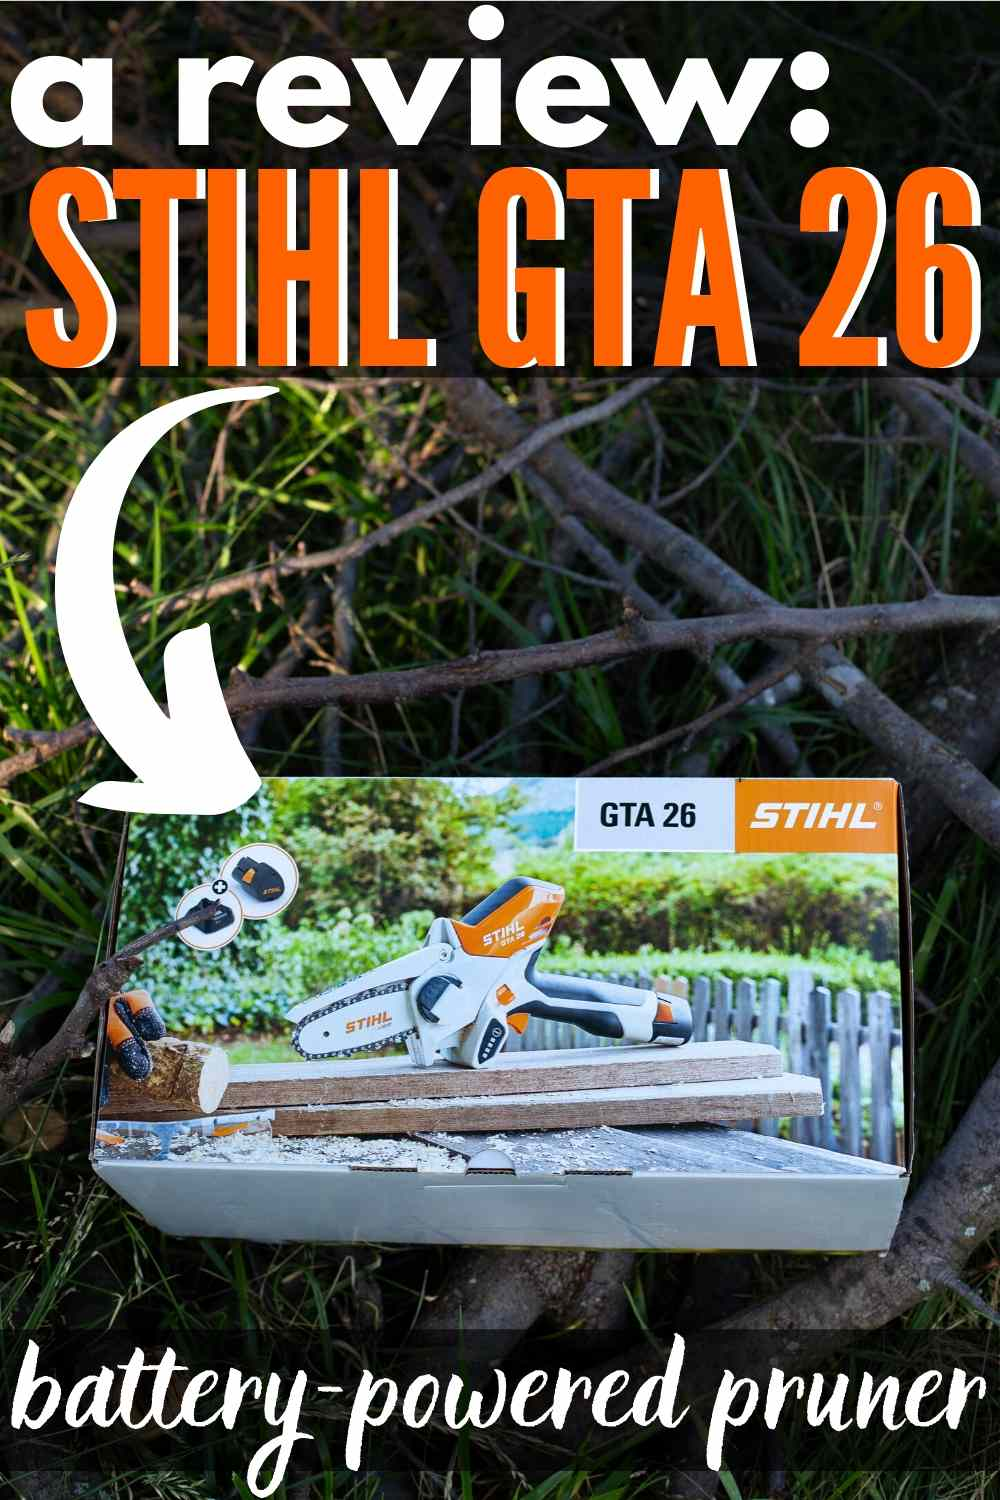 "STIHL GTA 26 in box on some twigs, sticks and yard debris - text ""a review stihl gta 26 battery powered pruner"""